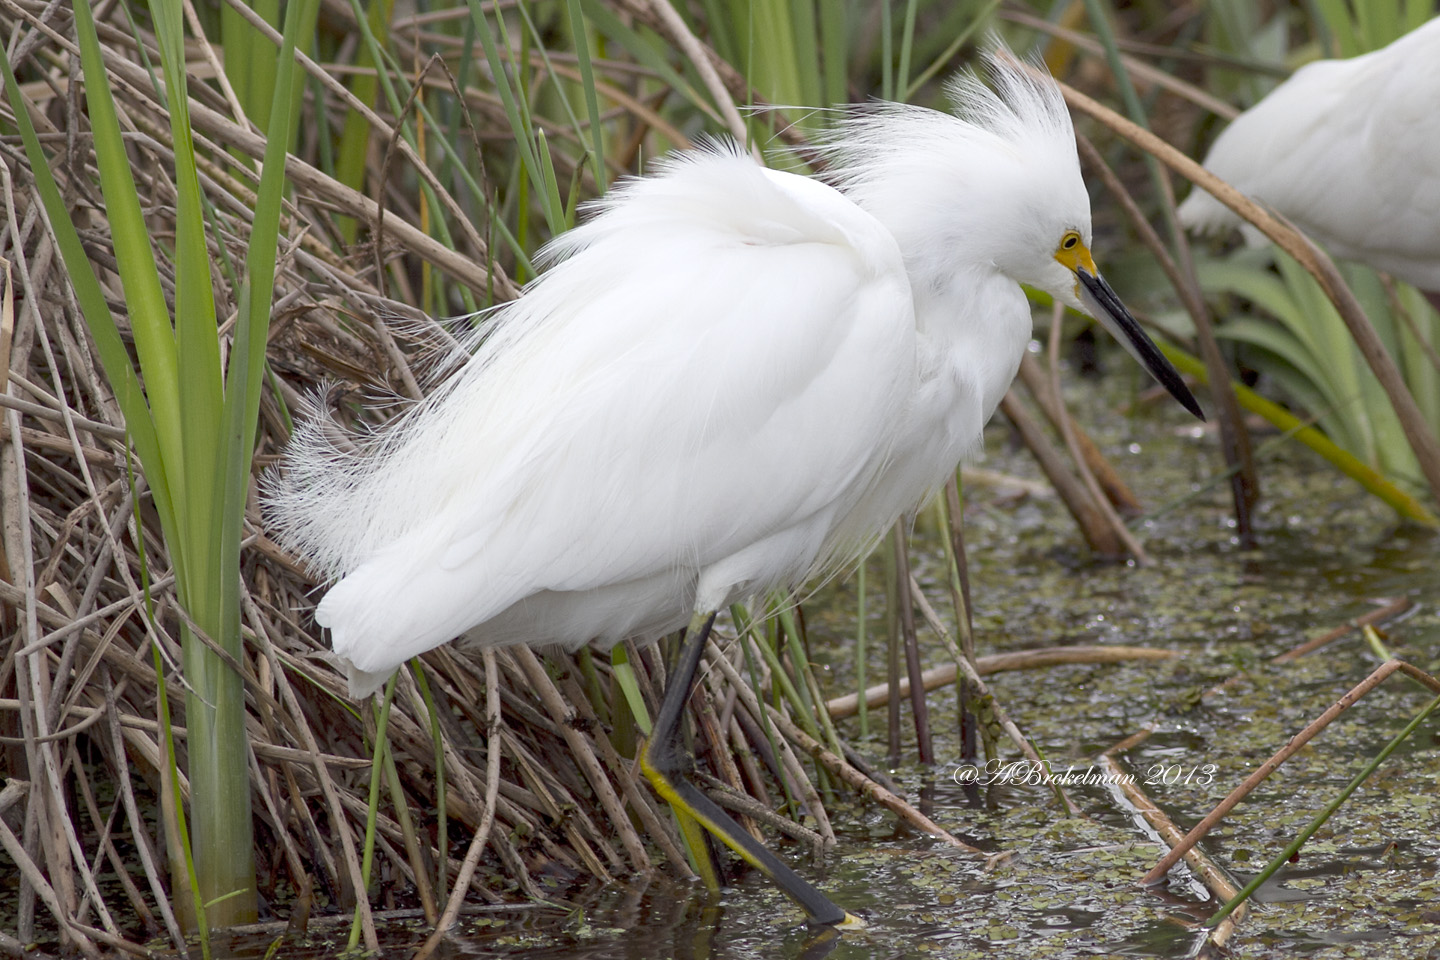 ann brokelman photography snowy egret with golden slippers florida jan 2013. Black Bedroom Furniture Sets. Home Design Ideas